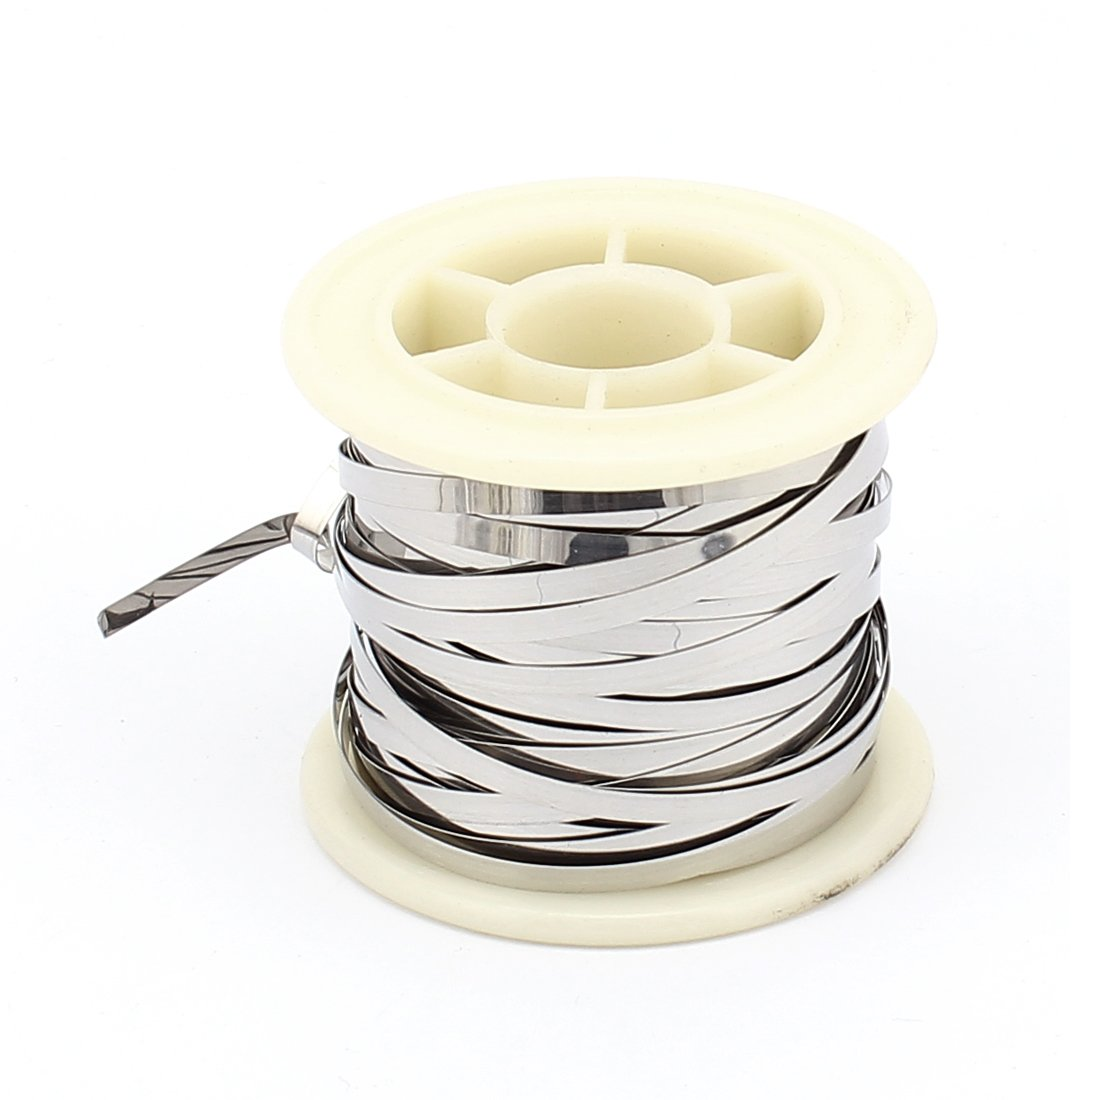 uxcell 10M 33Ft 0.2x3mm Nichrome Flat Heater Wire for Heating ...